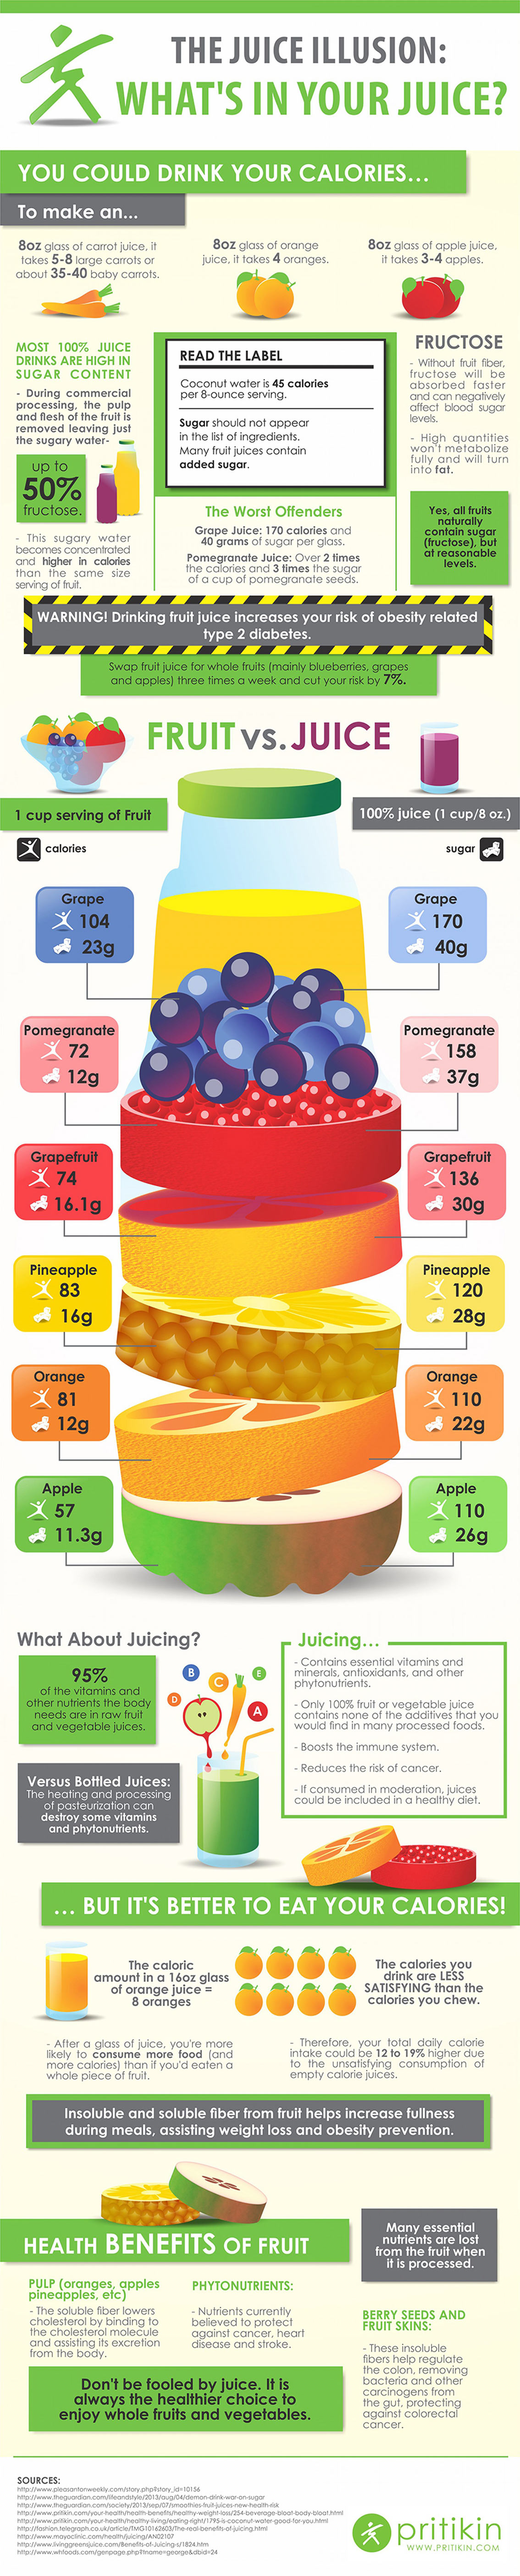 Whole Fruits vs Fruit Juice - Health Infographic